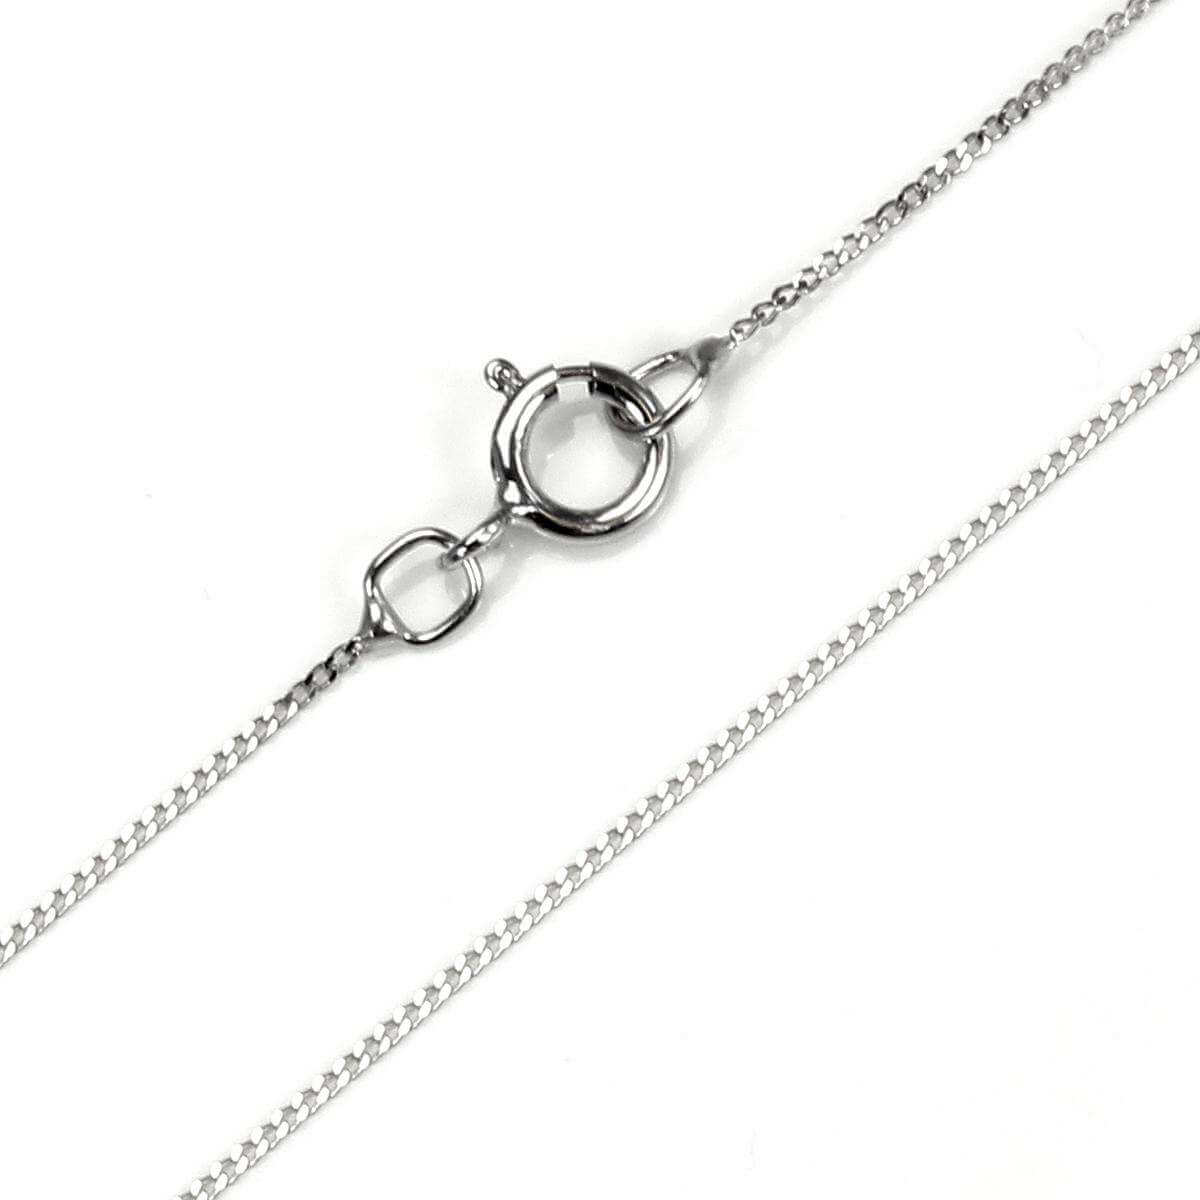 9ct White Gold Diamond Cut Chain Necklace